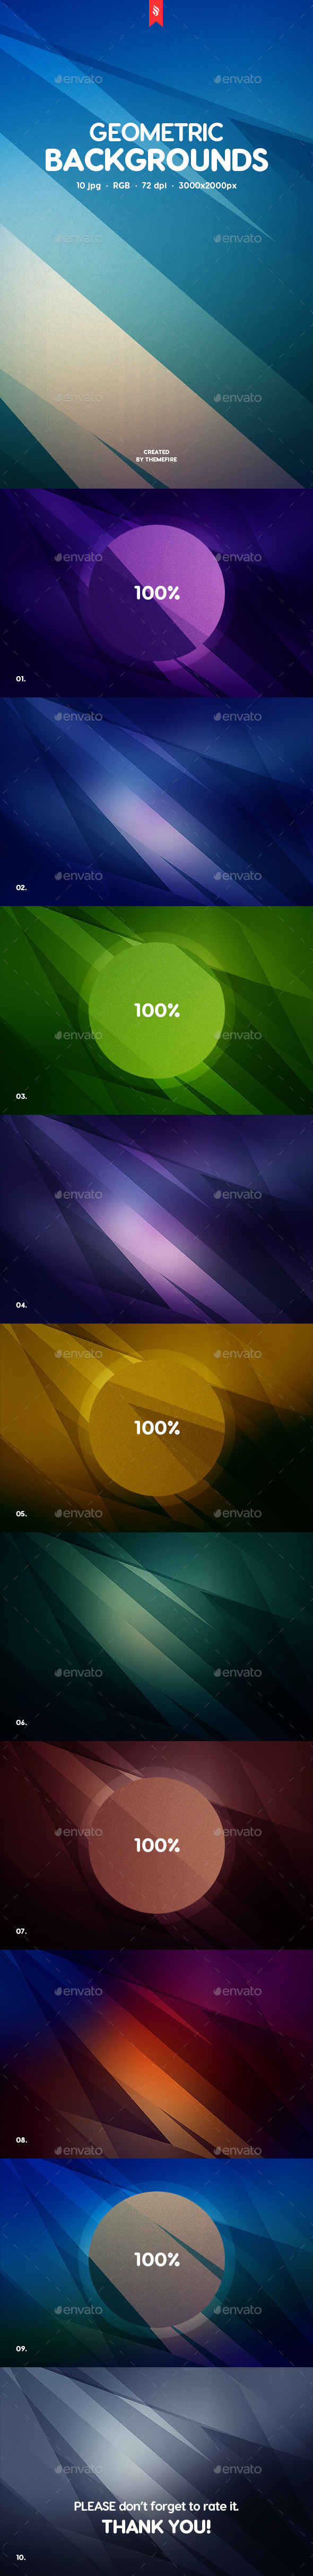 Abstract Geometric Backgrounds - Abstract Backgrounds